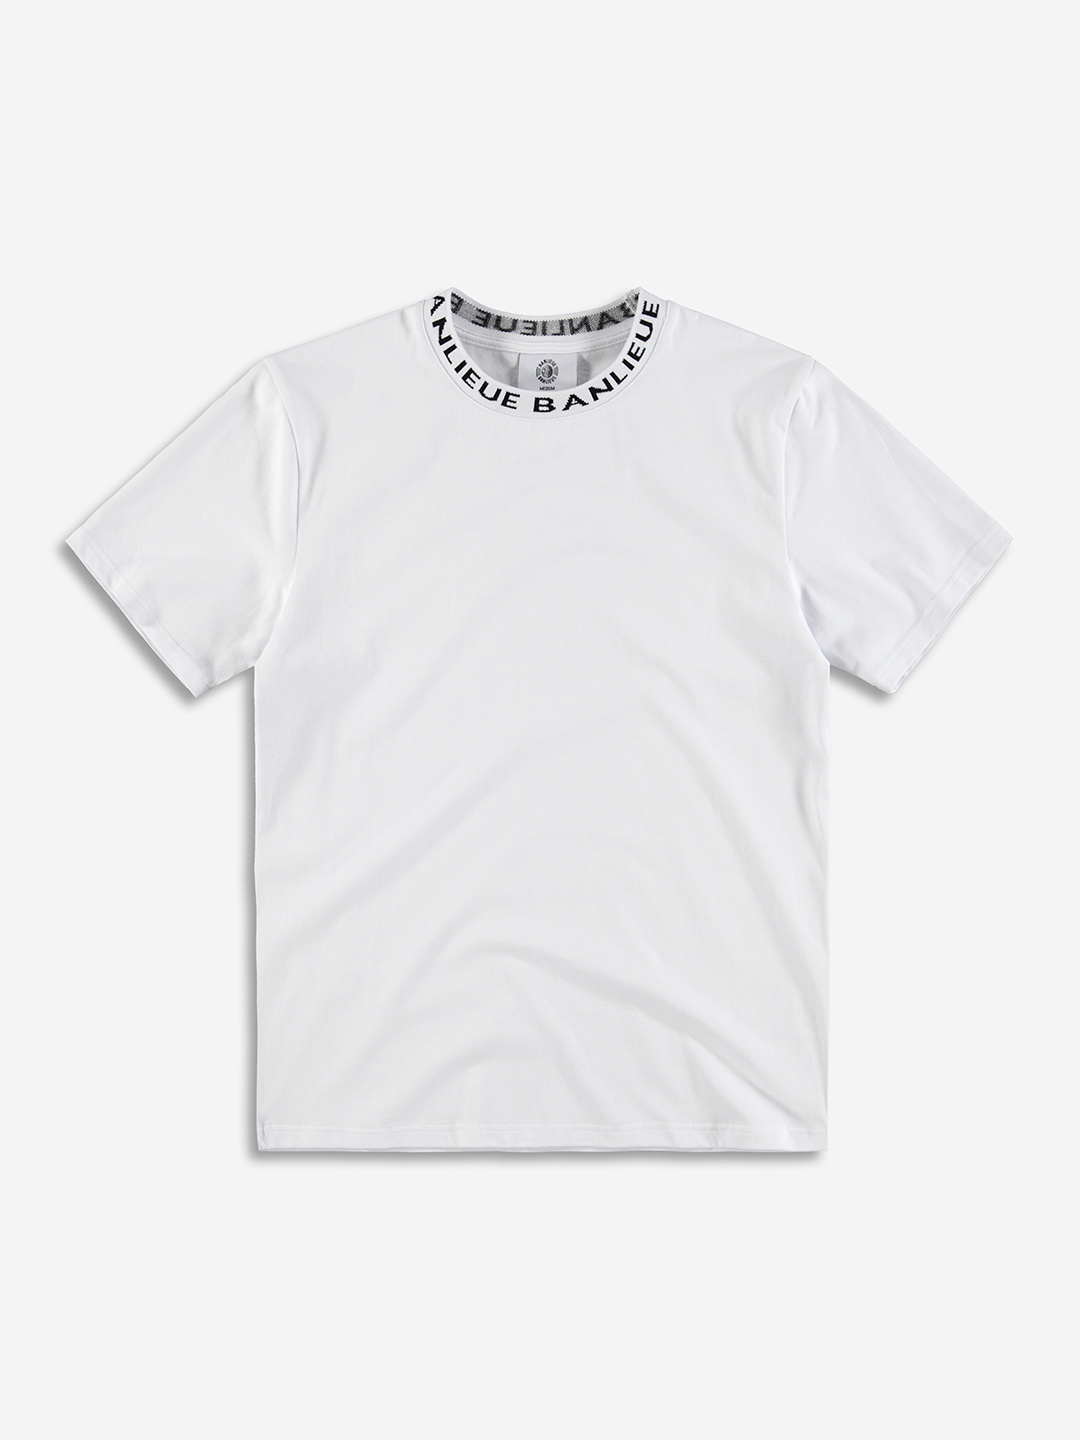 RAYMOND COLLAR T-SHIRT WHITE